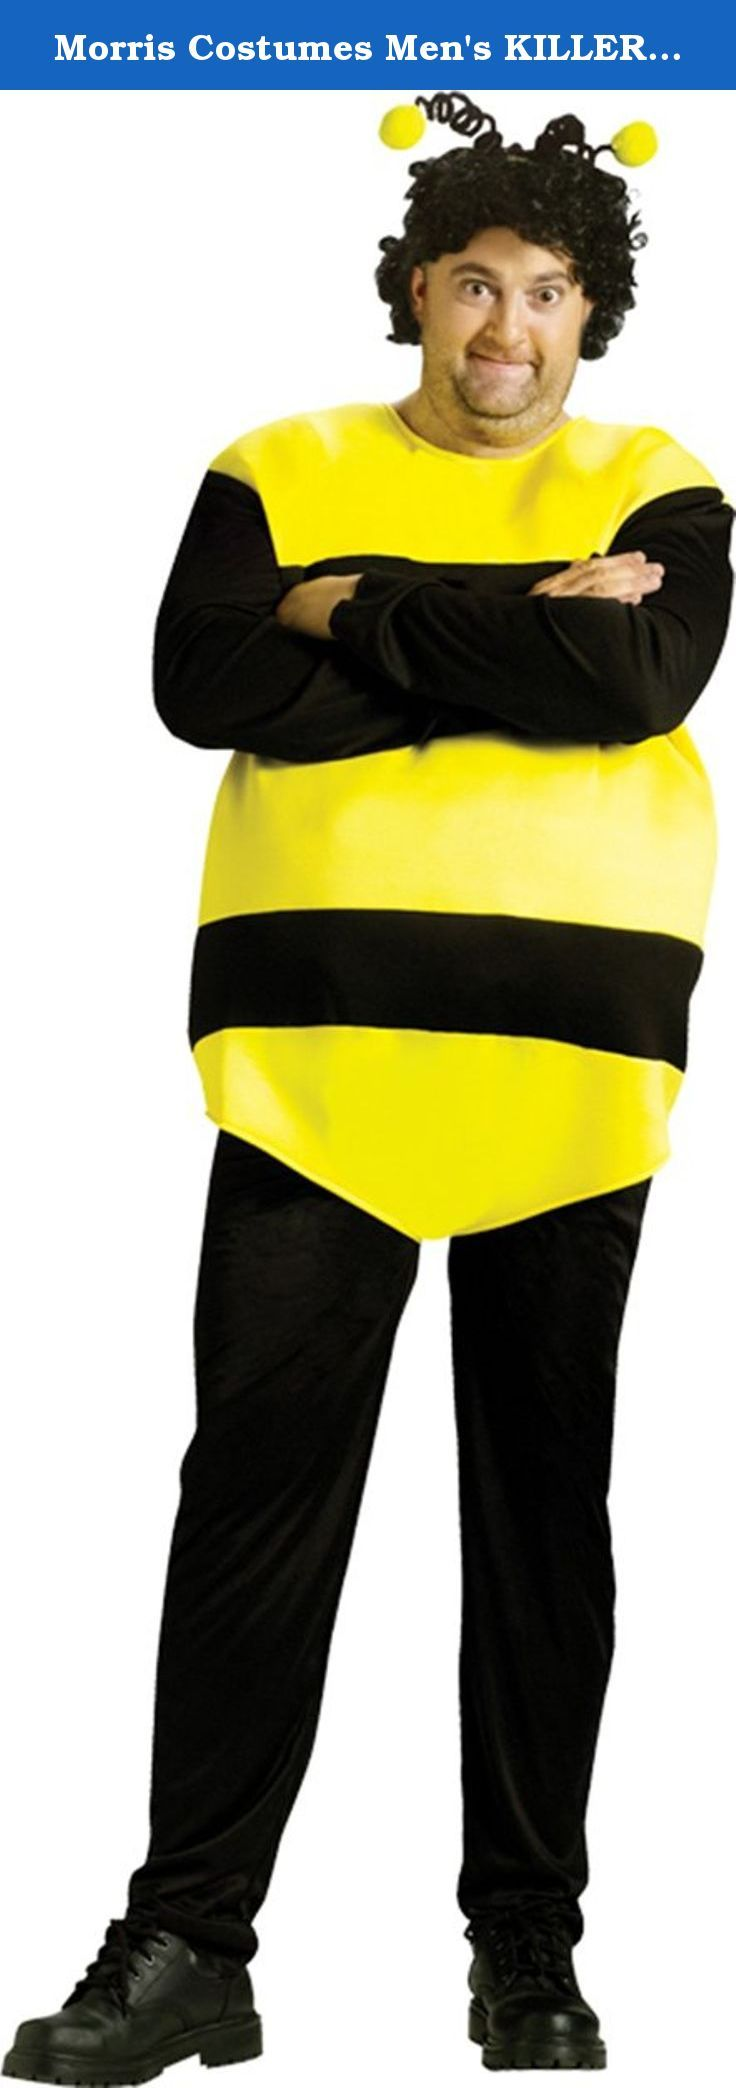 Morris Costumes Men's KILLER BEES STANDARD. From the hilarious Saturday Night Live sketches! Bee stripe tunic, pants, and antennae headband. Fits up to 6ft, 200lbs.